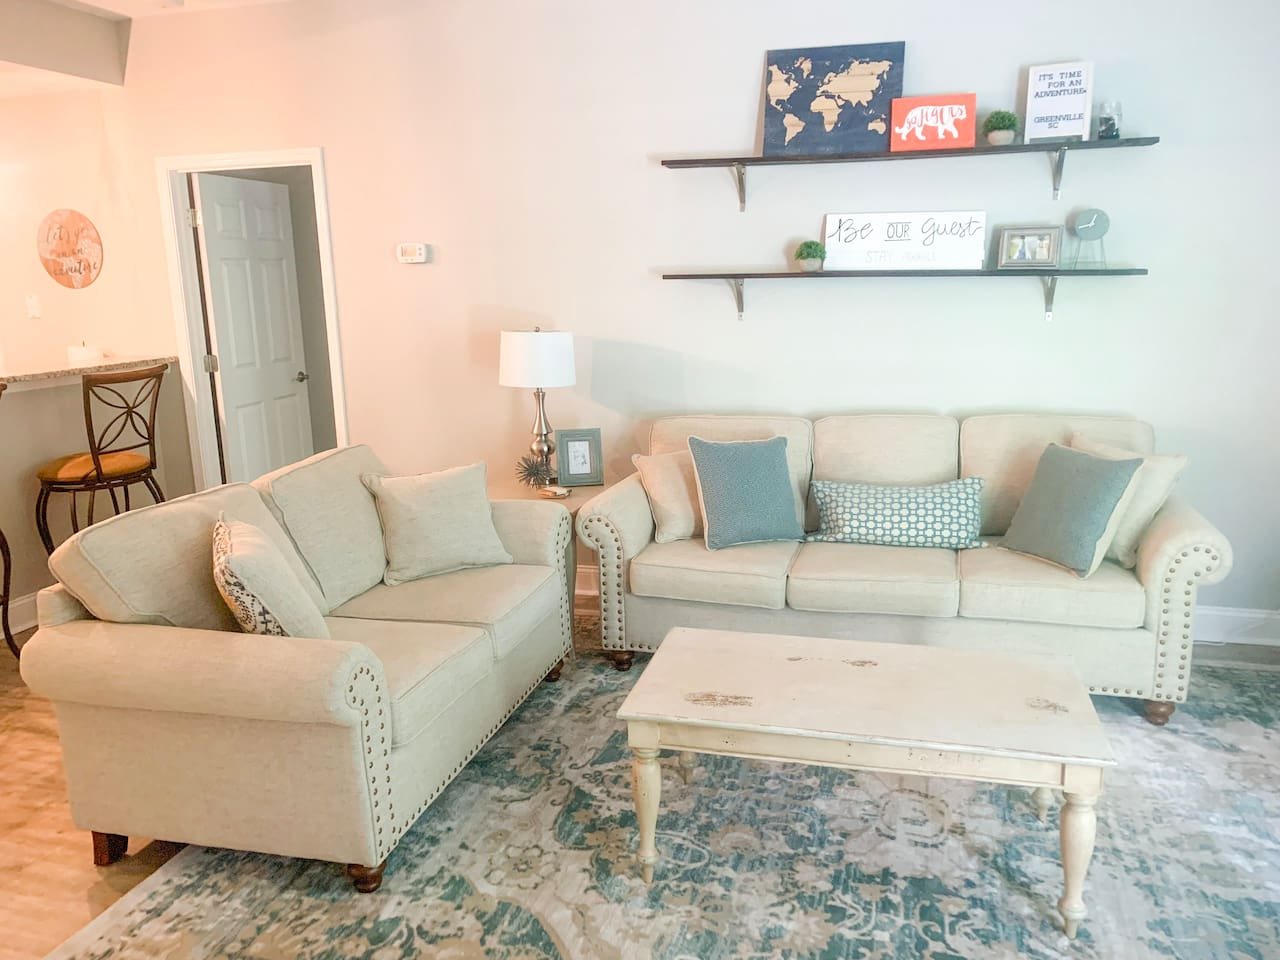 Come relax and enjoy your family and friends in our open, inviting space!